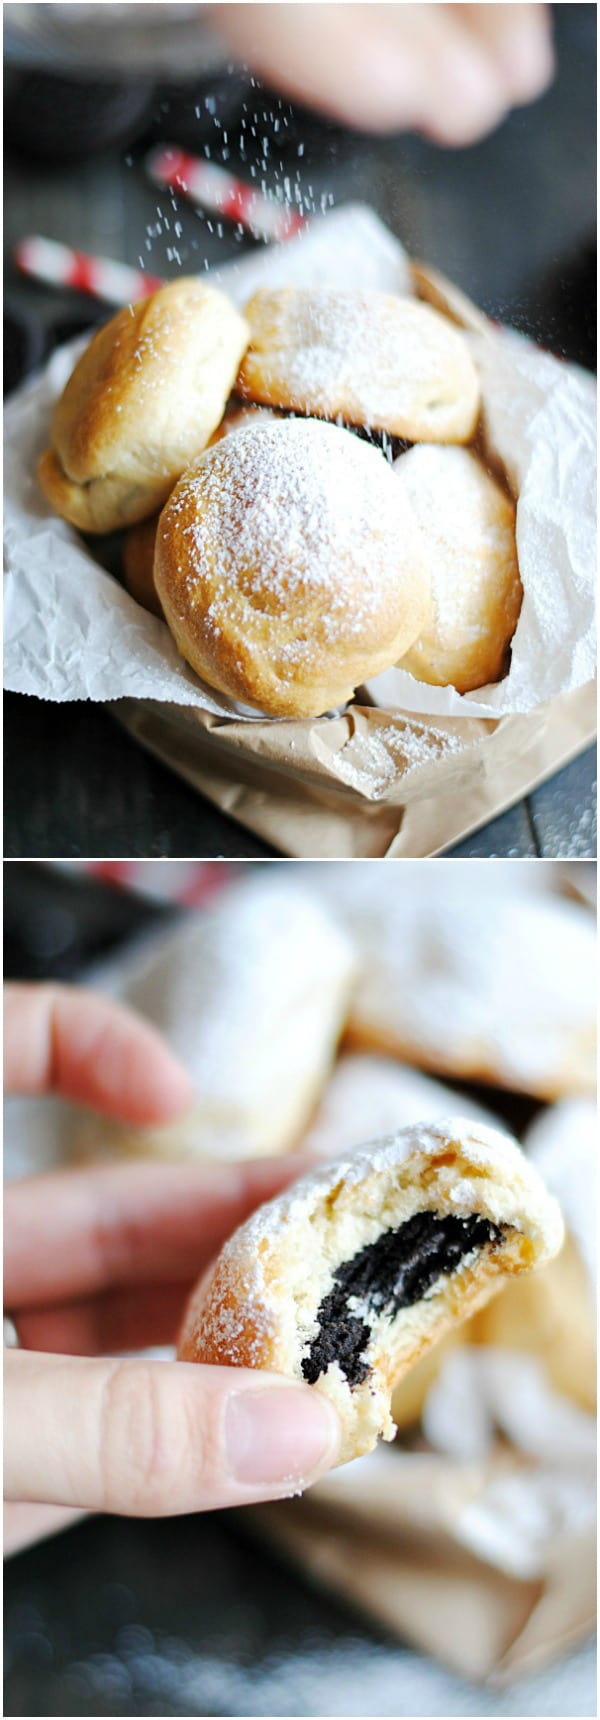 "Baked ""Deep Fried"" Oreos - plus a collection of both sweet and savory recipes using Crescent Roll dough!"